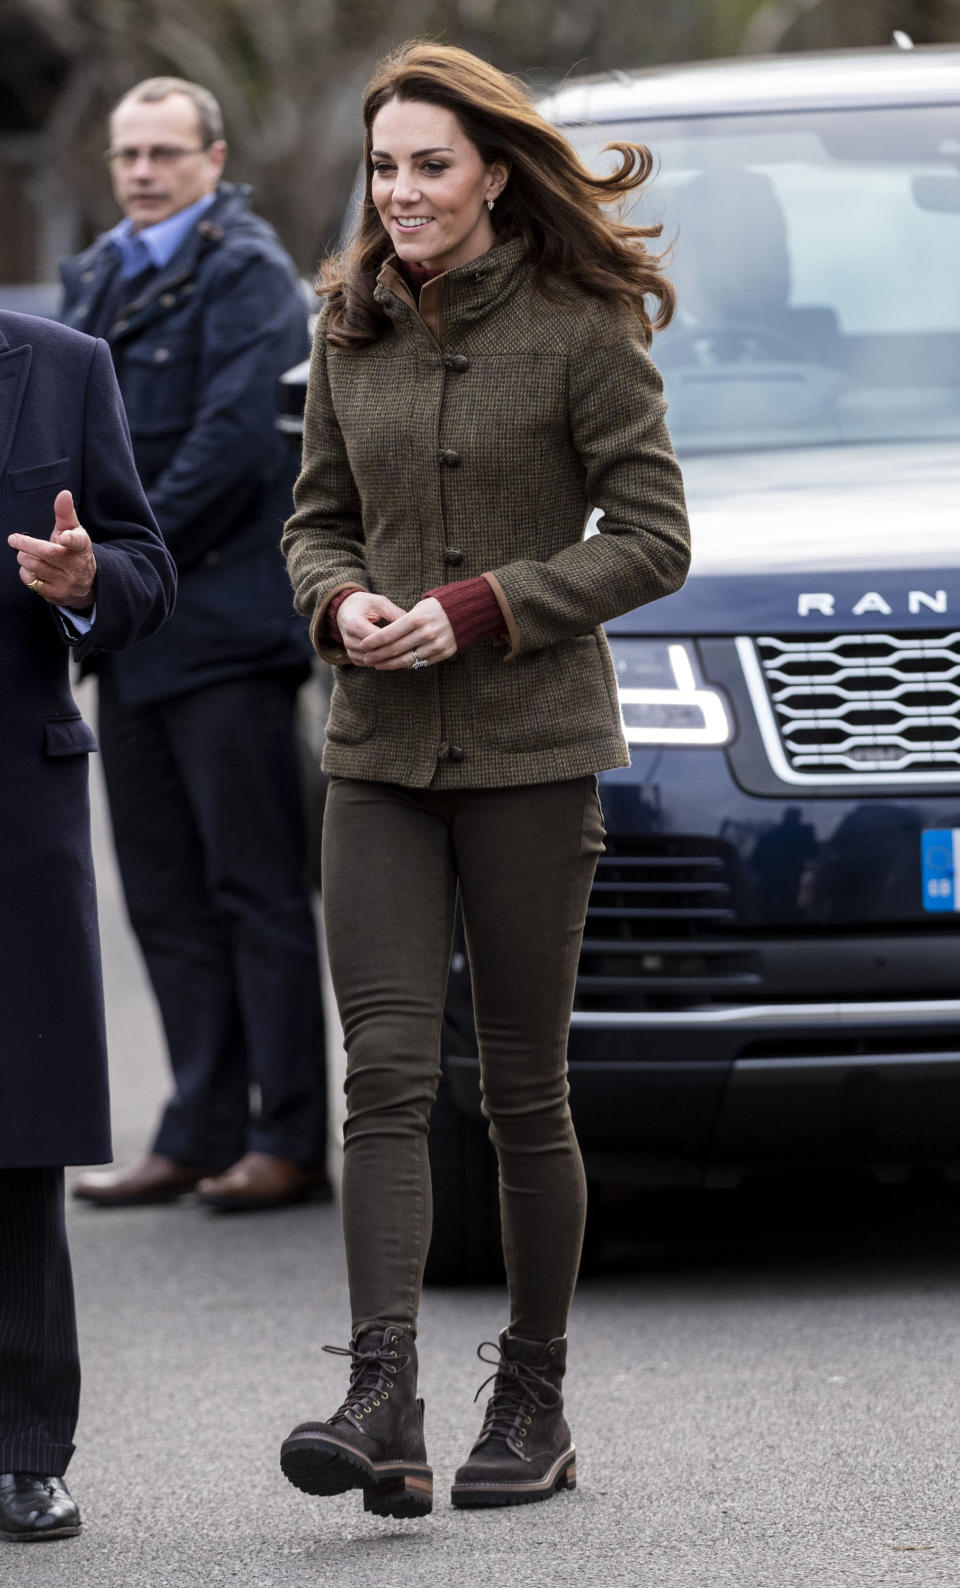 For her first solo engagement of 2019, the Duchess of Cambridge visited King Henry's Walk, a community garden in Islington. Ready for the great outdoors, the 37-year-old wore the Bracken Tweed jacket by Dubarry with a J Crew roll neck and Zara trousers. [Photo: Getty]